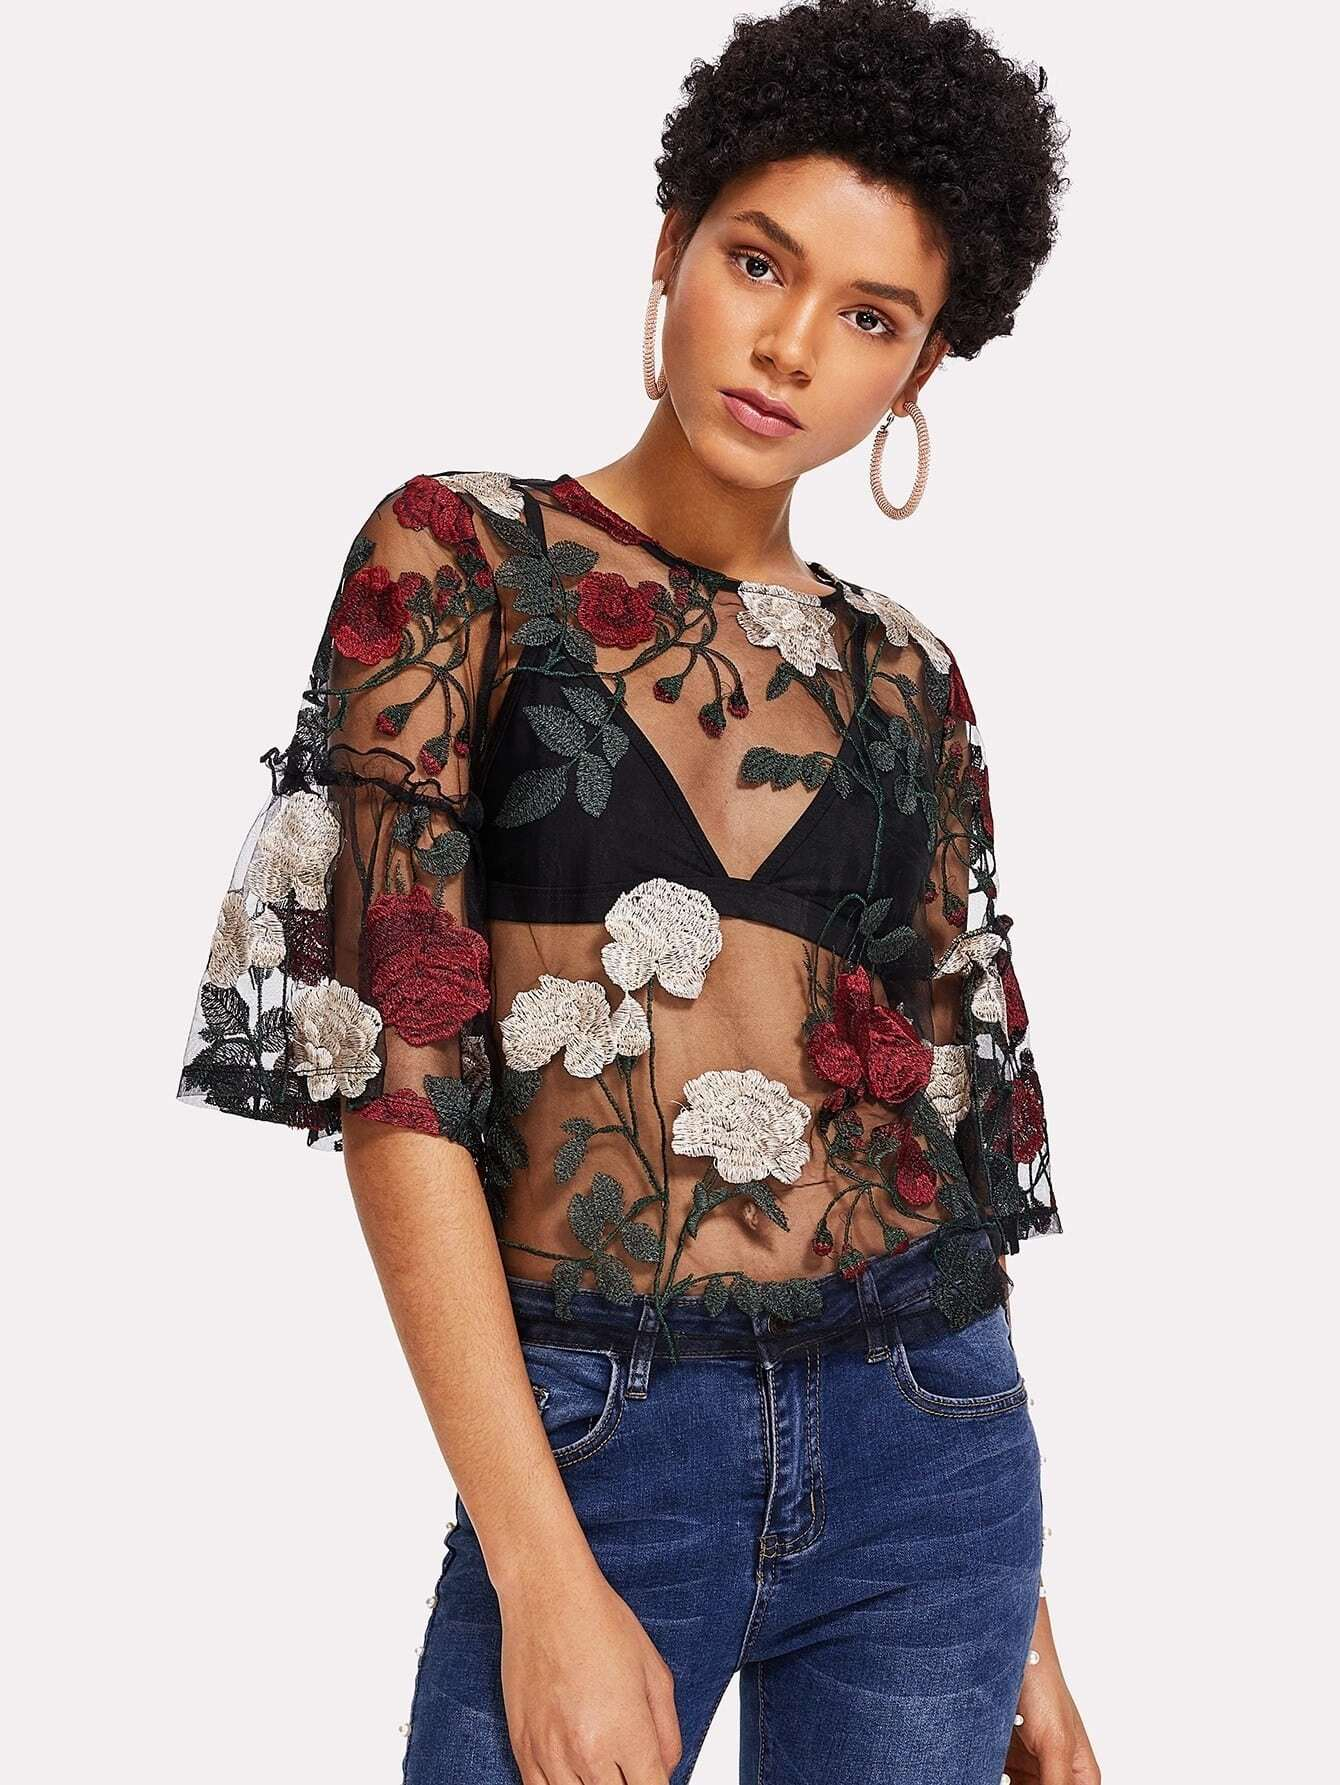 Floral Embroidered Keyhole Back Sheer Mesh Top without Bra girls keyhole back floral embroidered mesh top